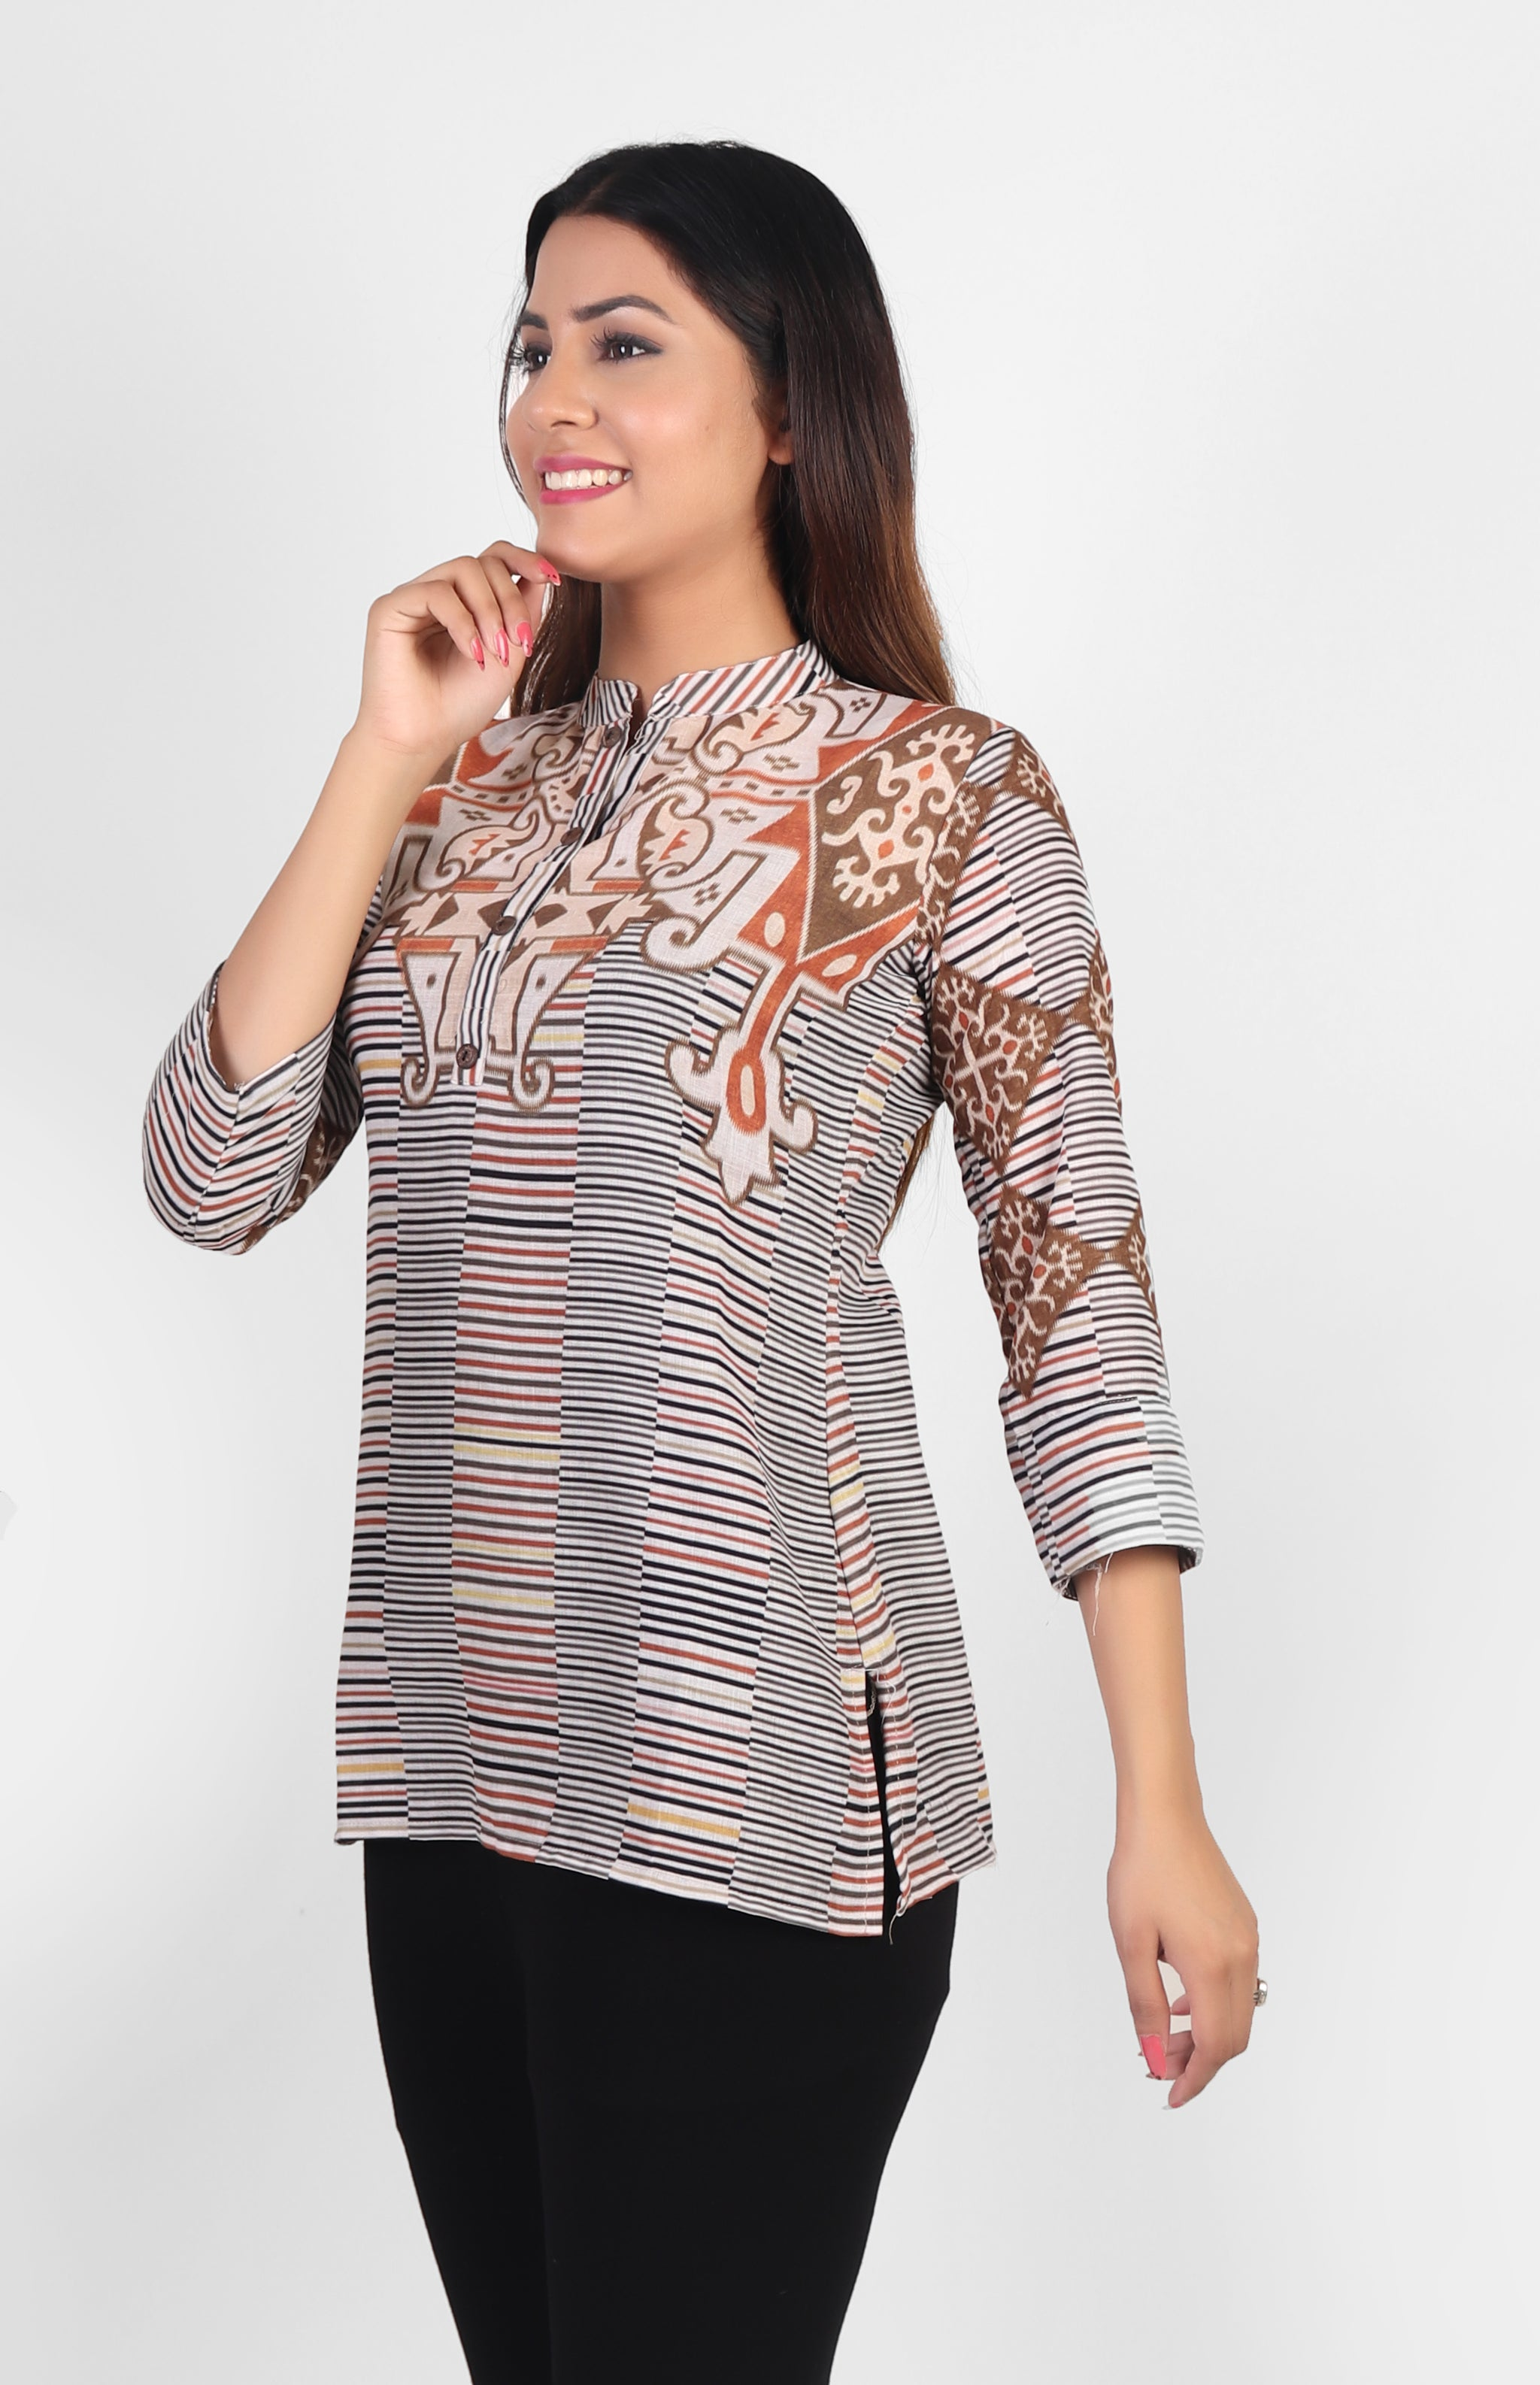 Cotton Top with Stripes and Pattern